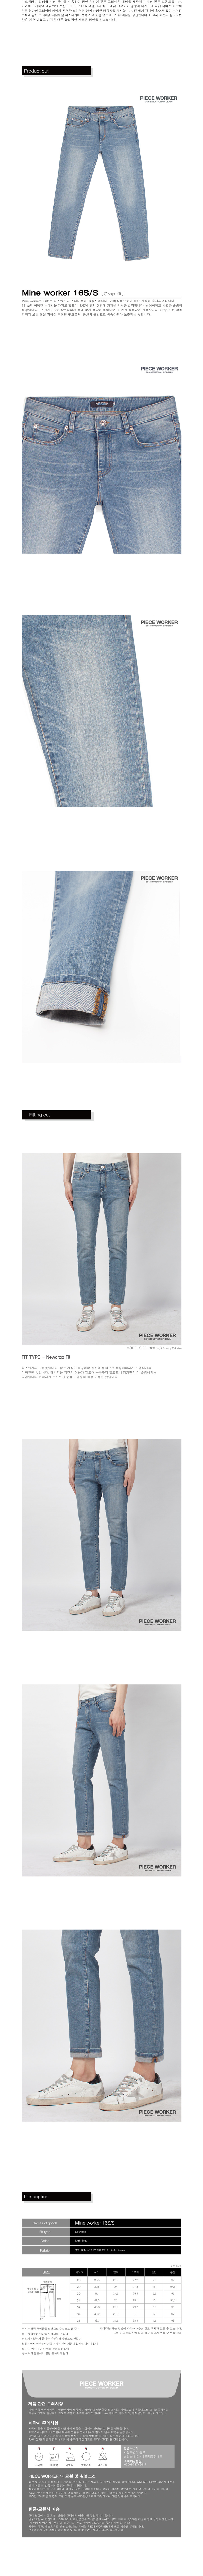 피스워커(PIECE WORKER) Mine worker 16SS / Crop